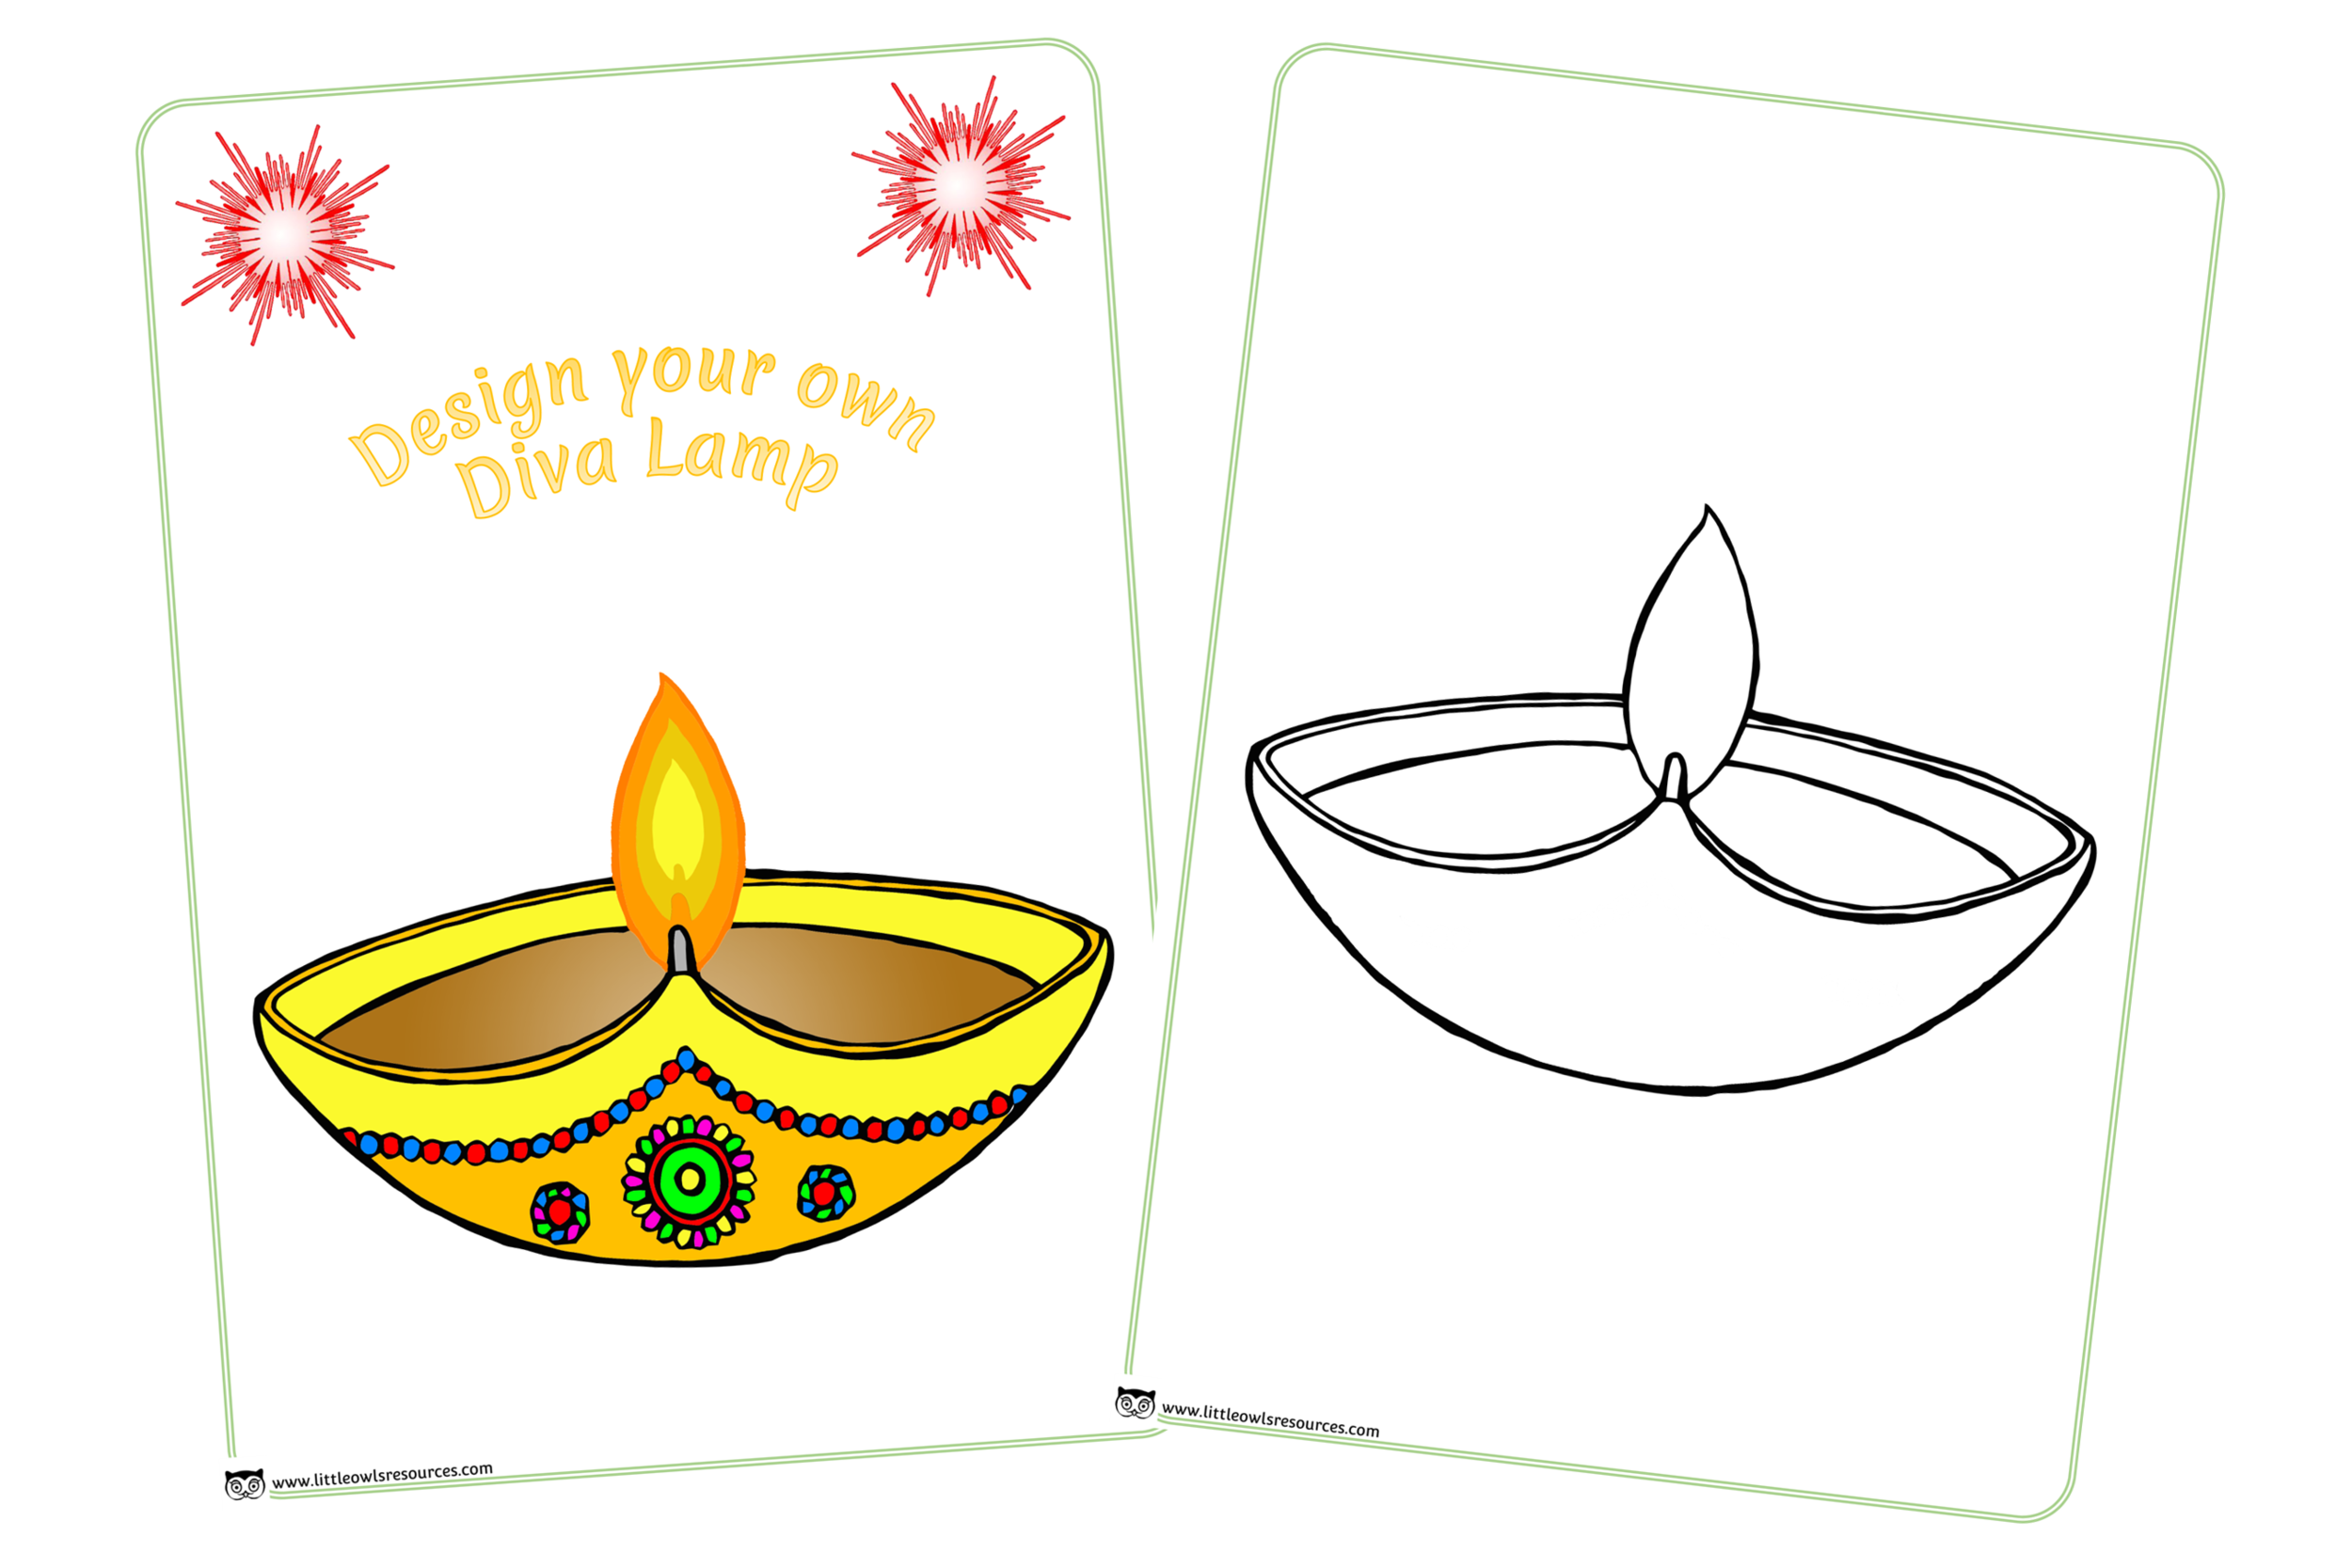 Design your own diva lamp activity sheets